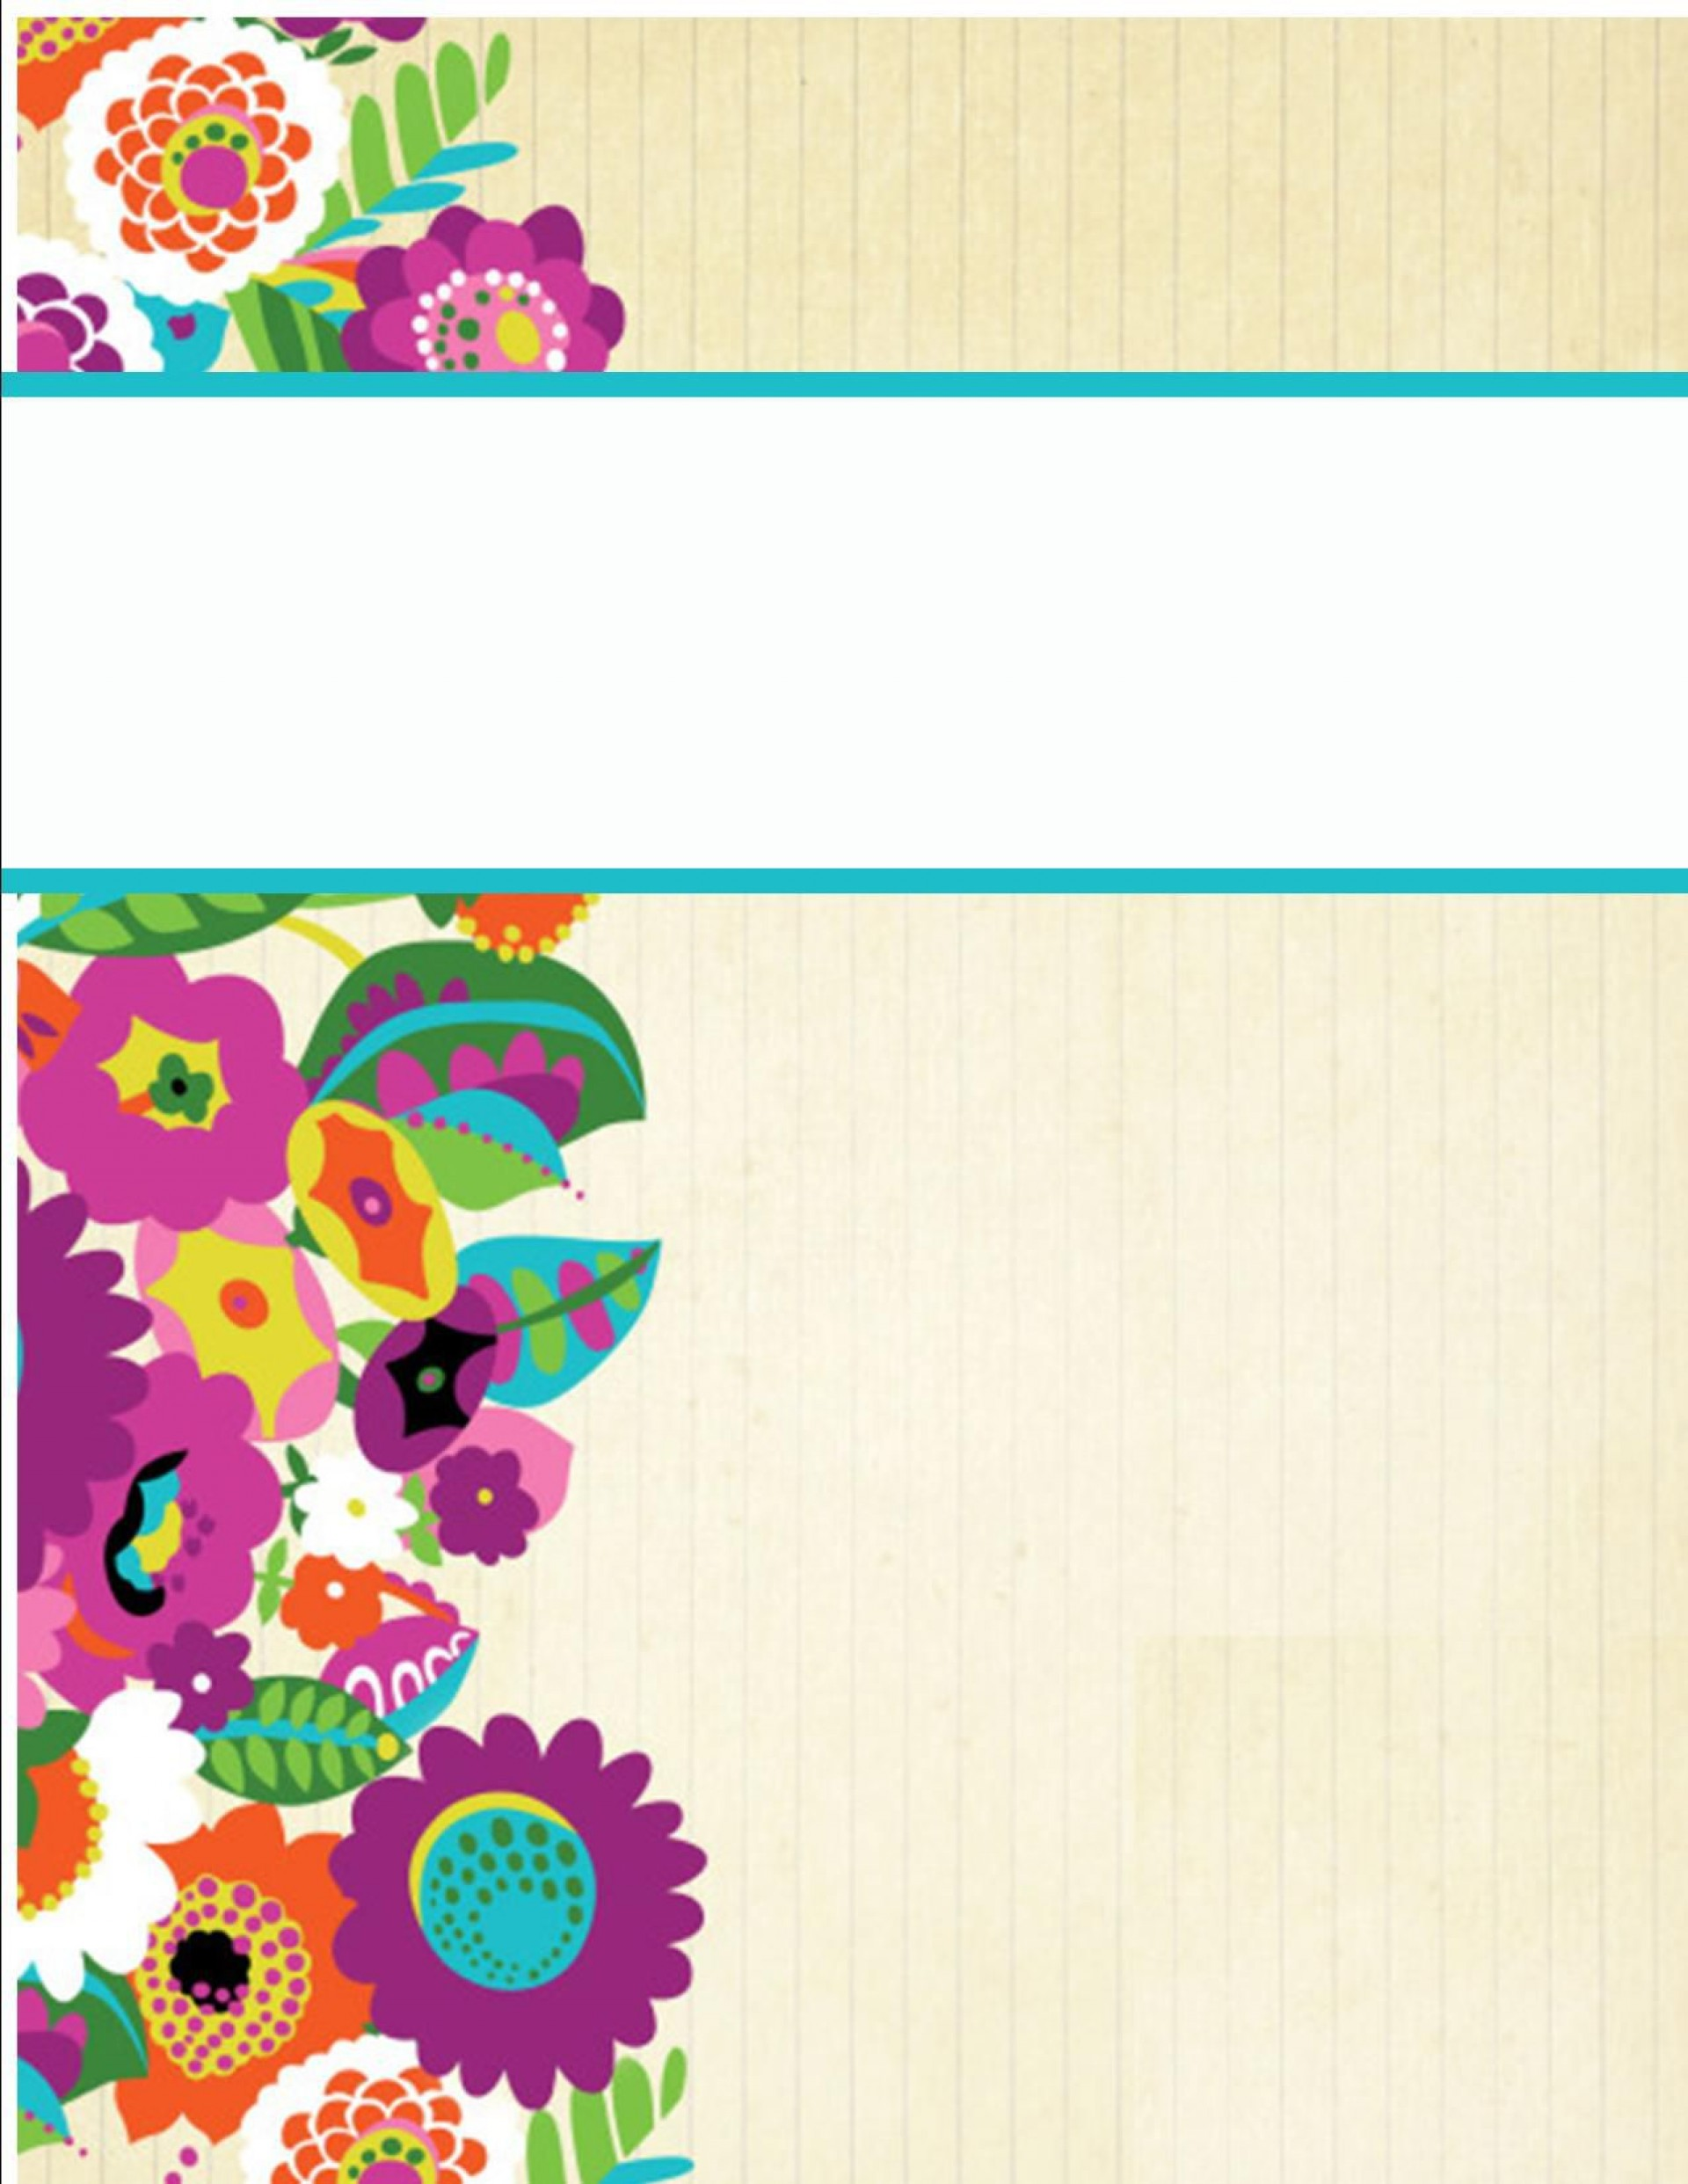 002 Formidable Cute Binder Cover Template Free Printable Image 1920